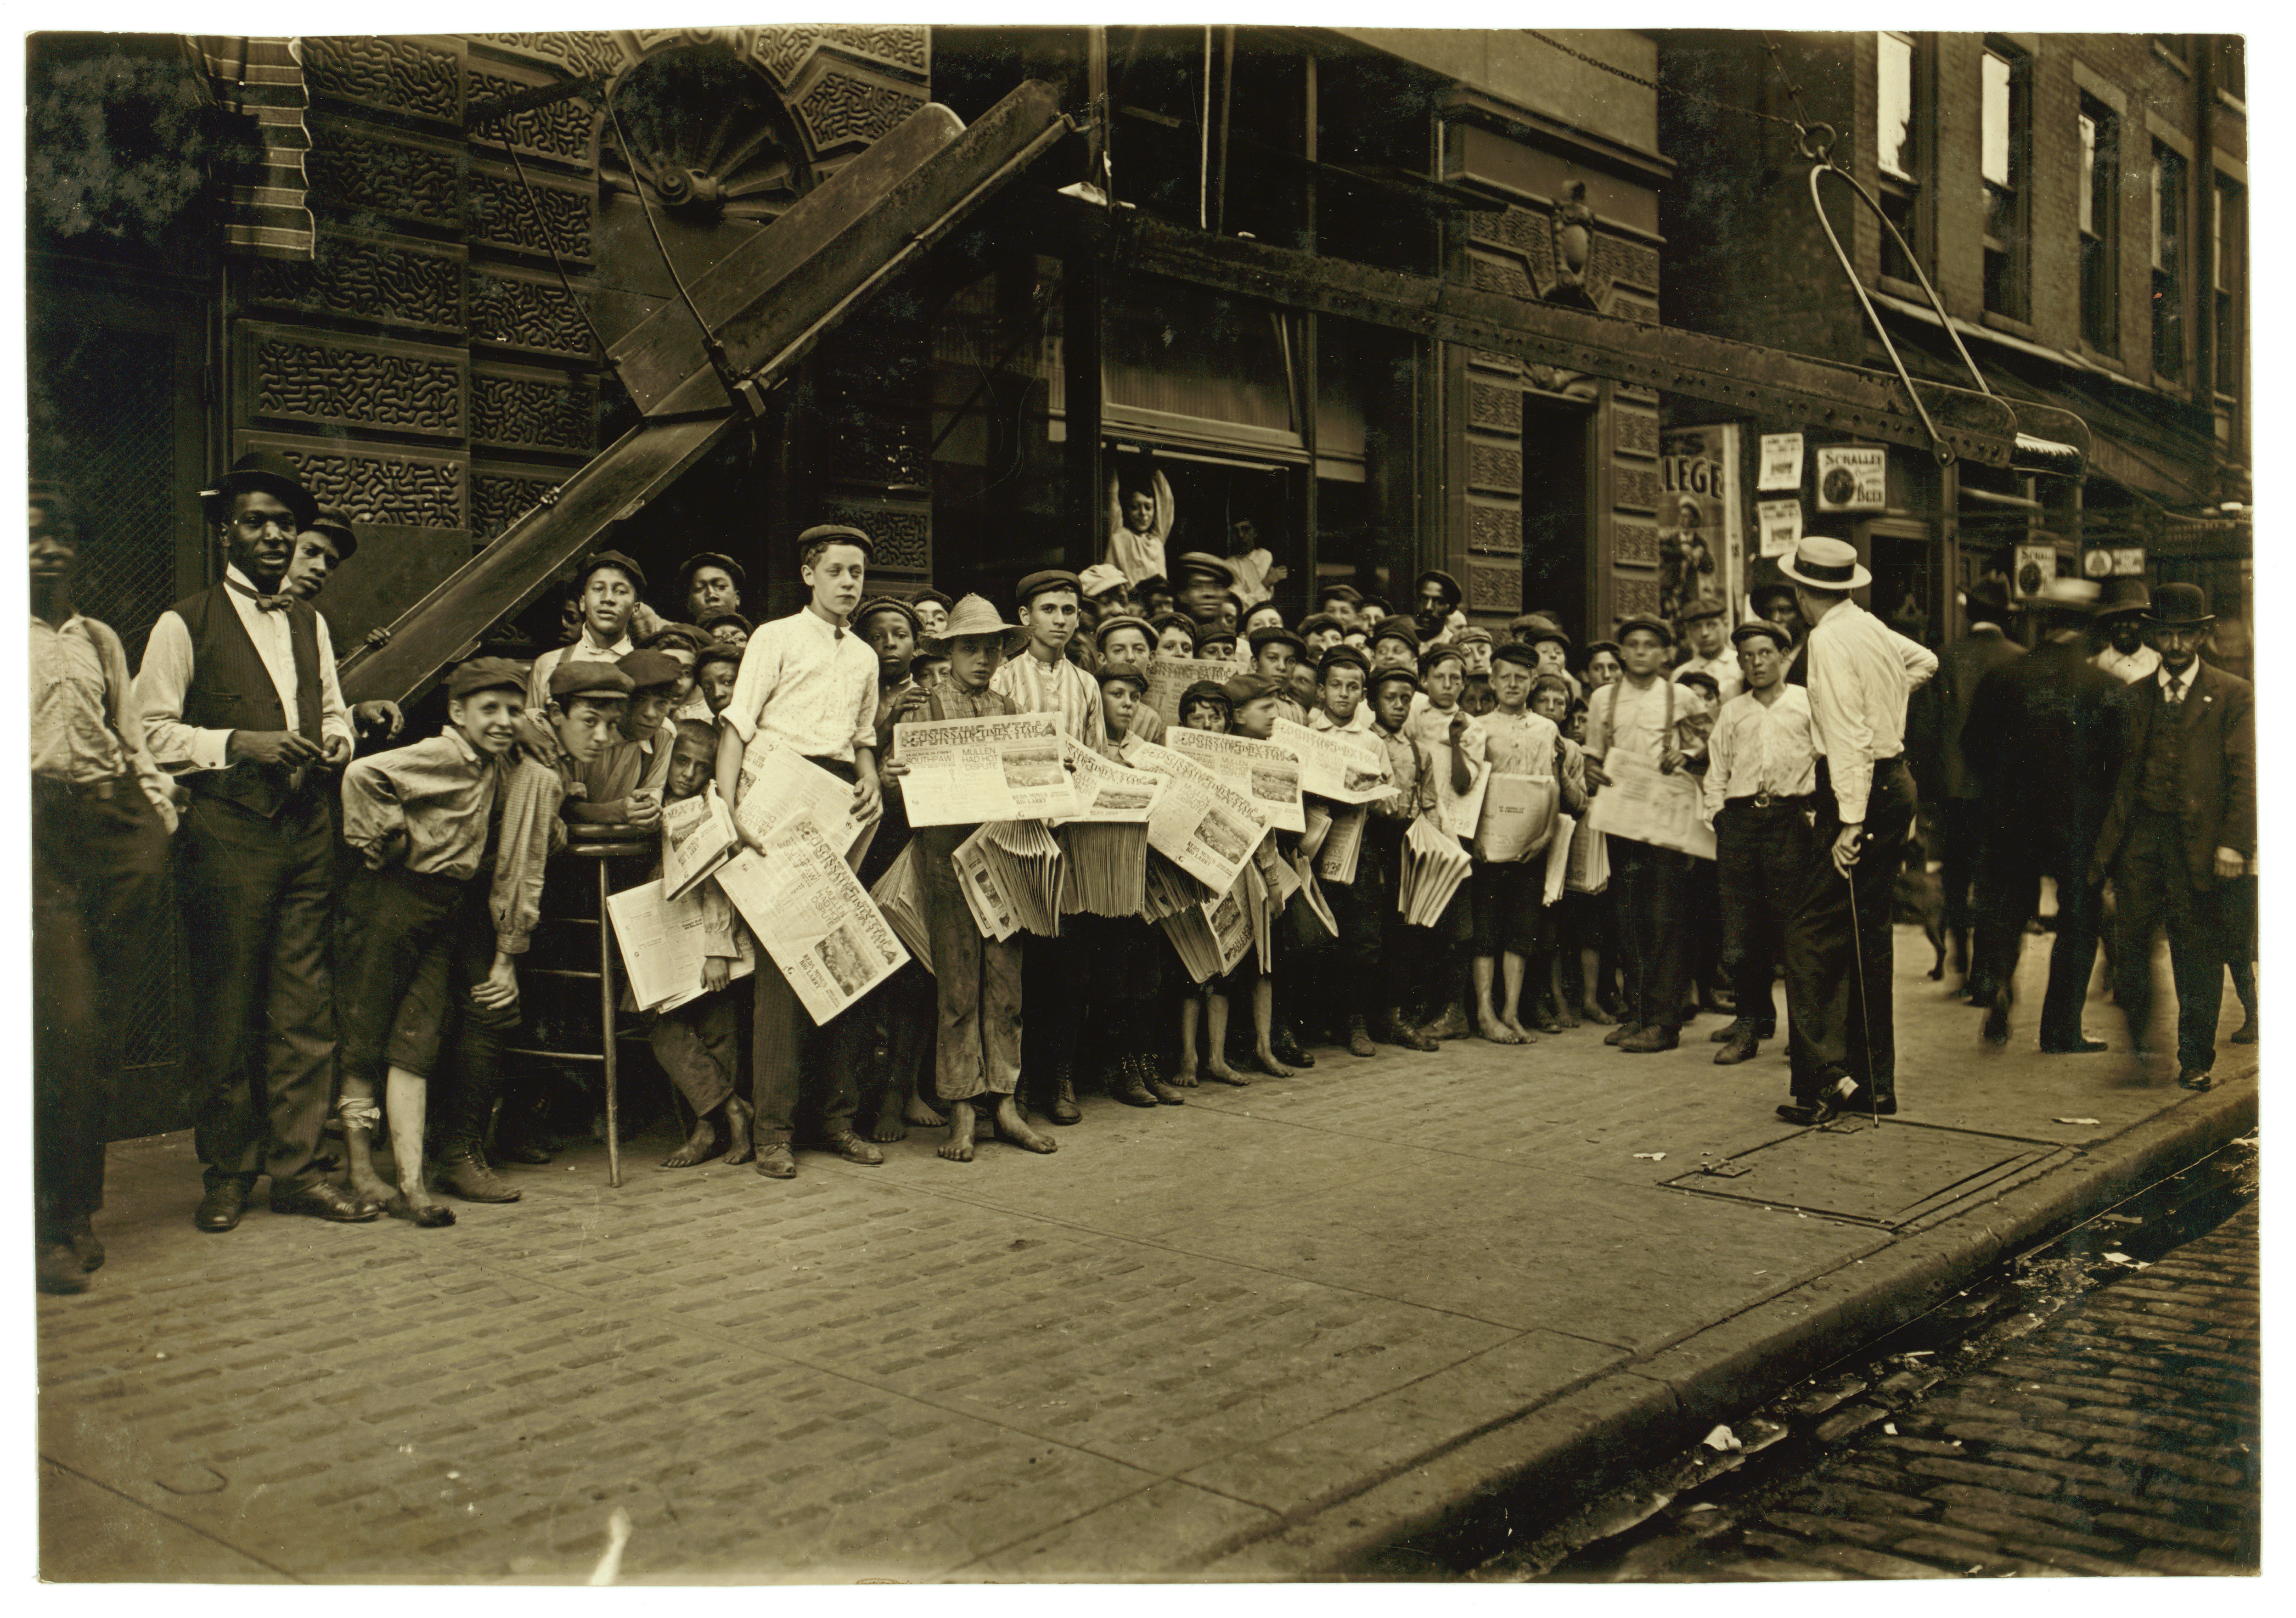 Lewis Hine, Newsboys with base-ball extra, Cincinnati, Ohio, 1908